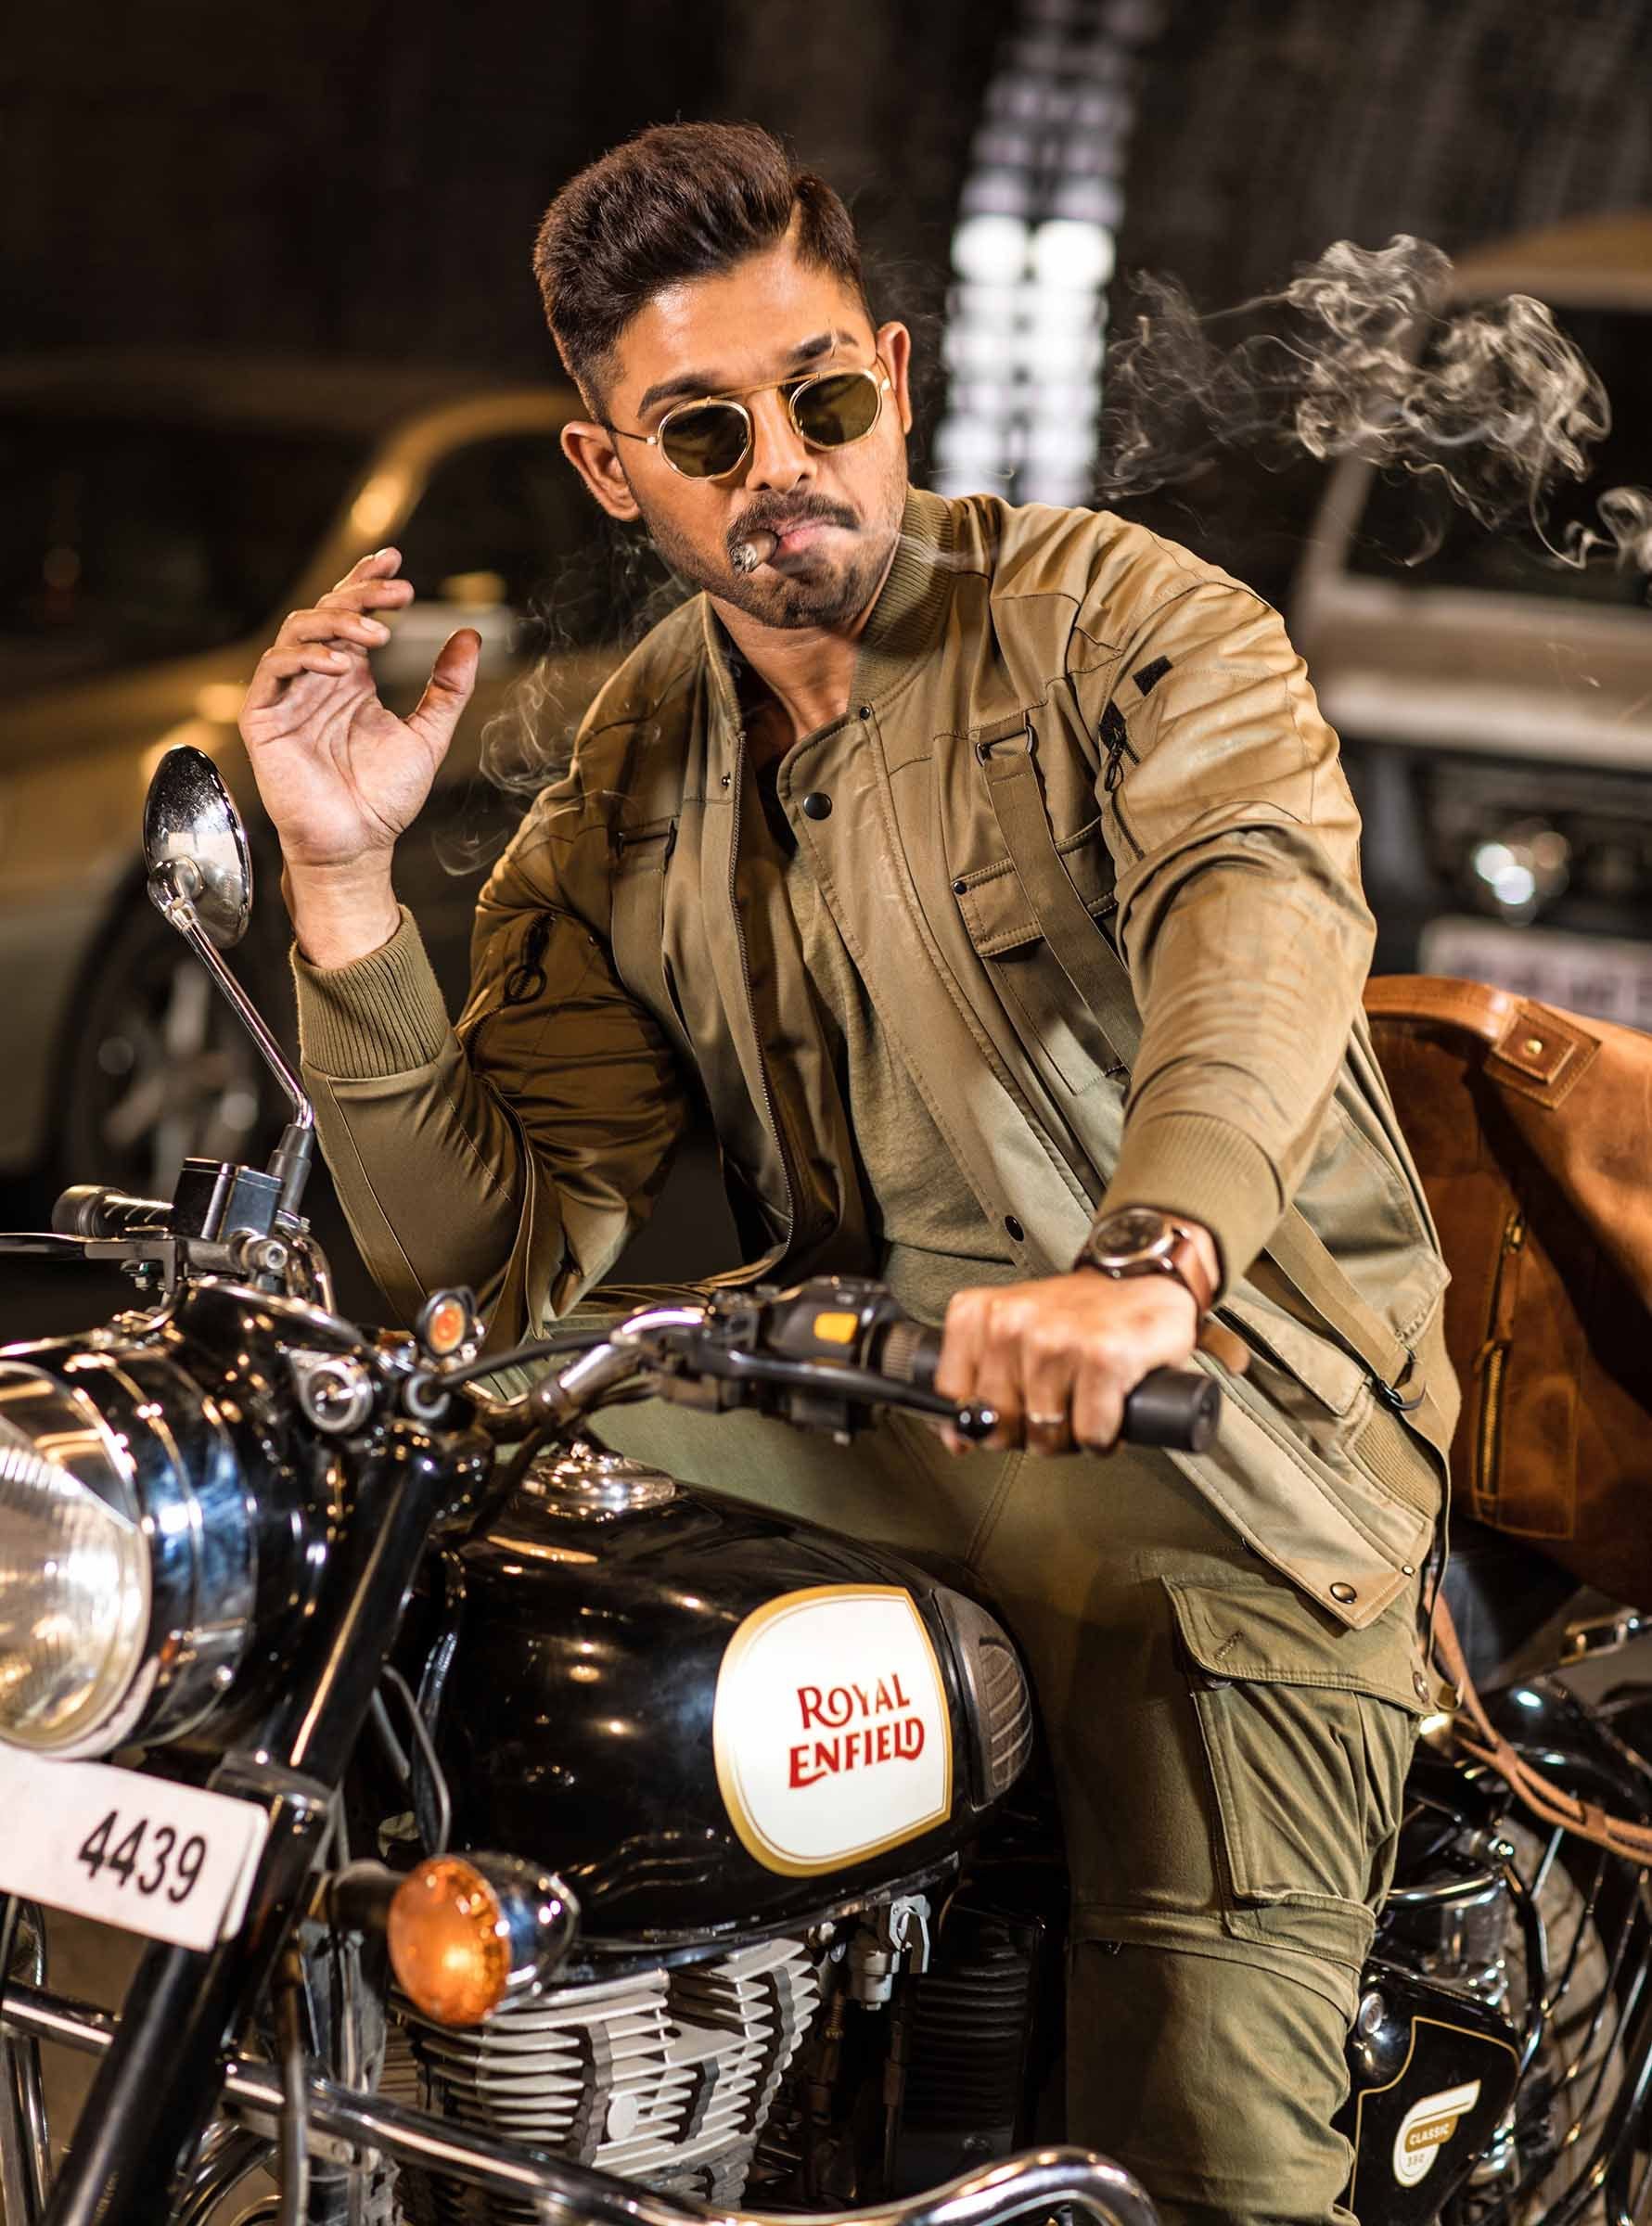 Allu Arjun's En Peyar Surya En Veedu India grand TN release planned by  Sakthi Film Factory Stylish Star Allu Arjun's En… | Movie photo, Actor  photo, Galaxy pictures